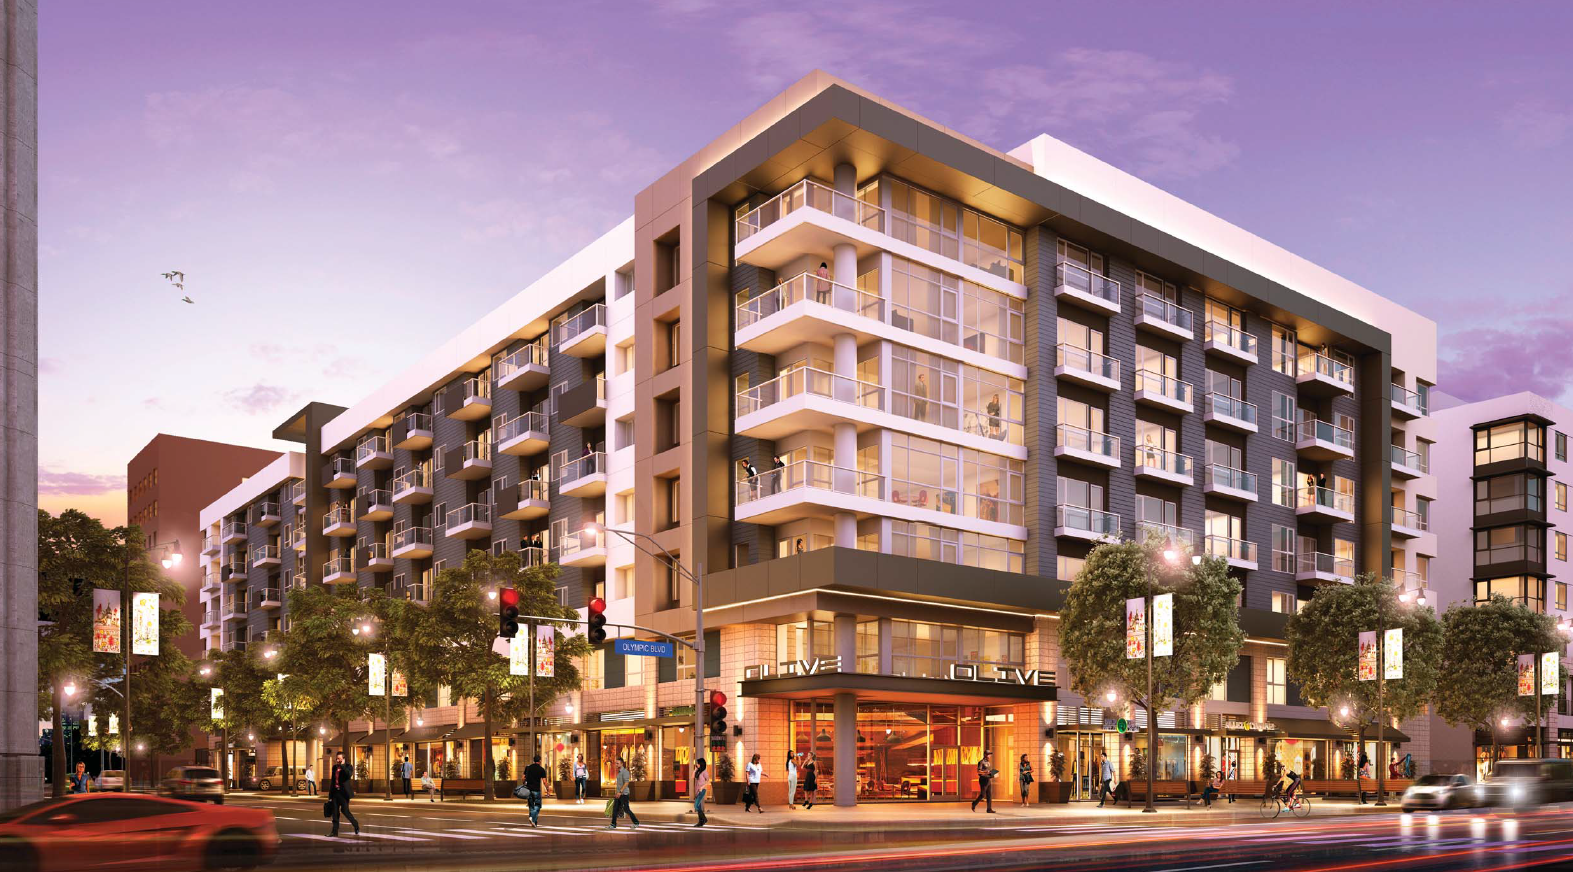 Building Los Angeles Hanover Group Plans South Park Domination With Another Mixed User